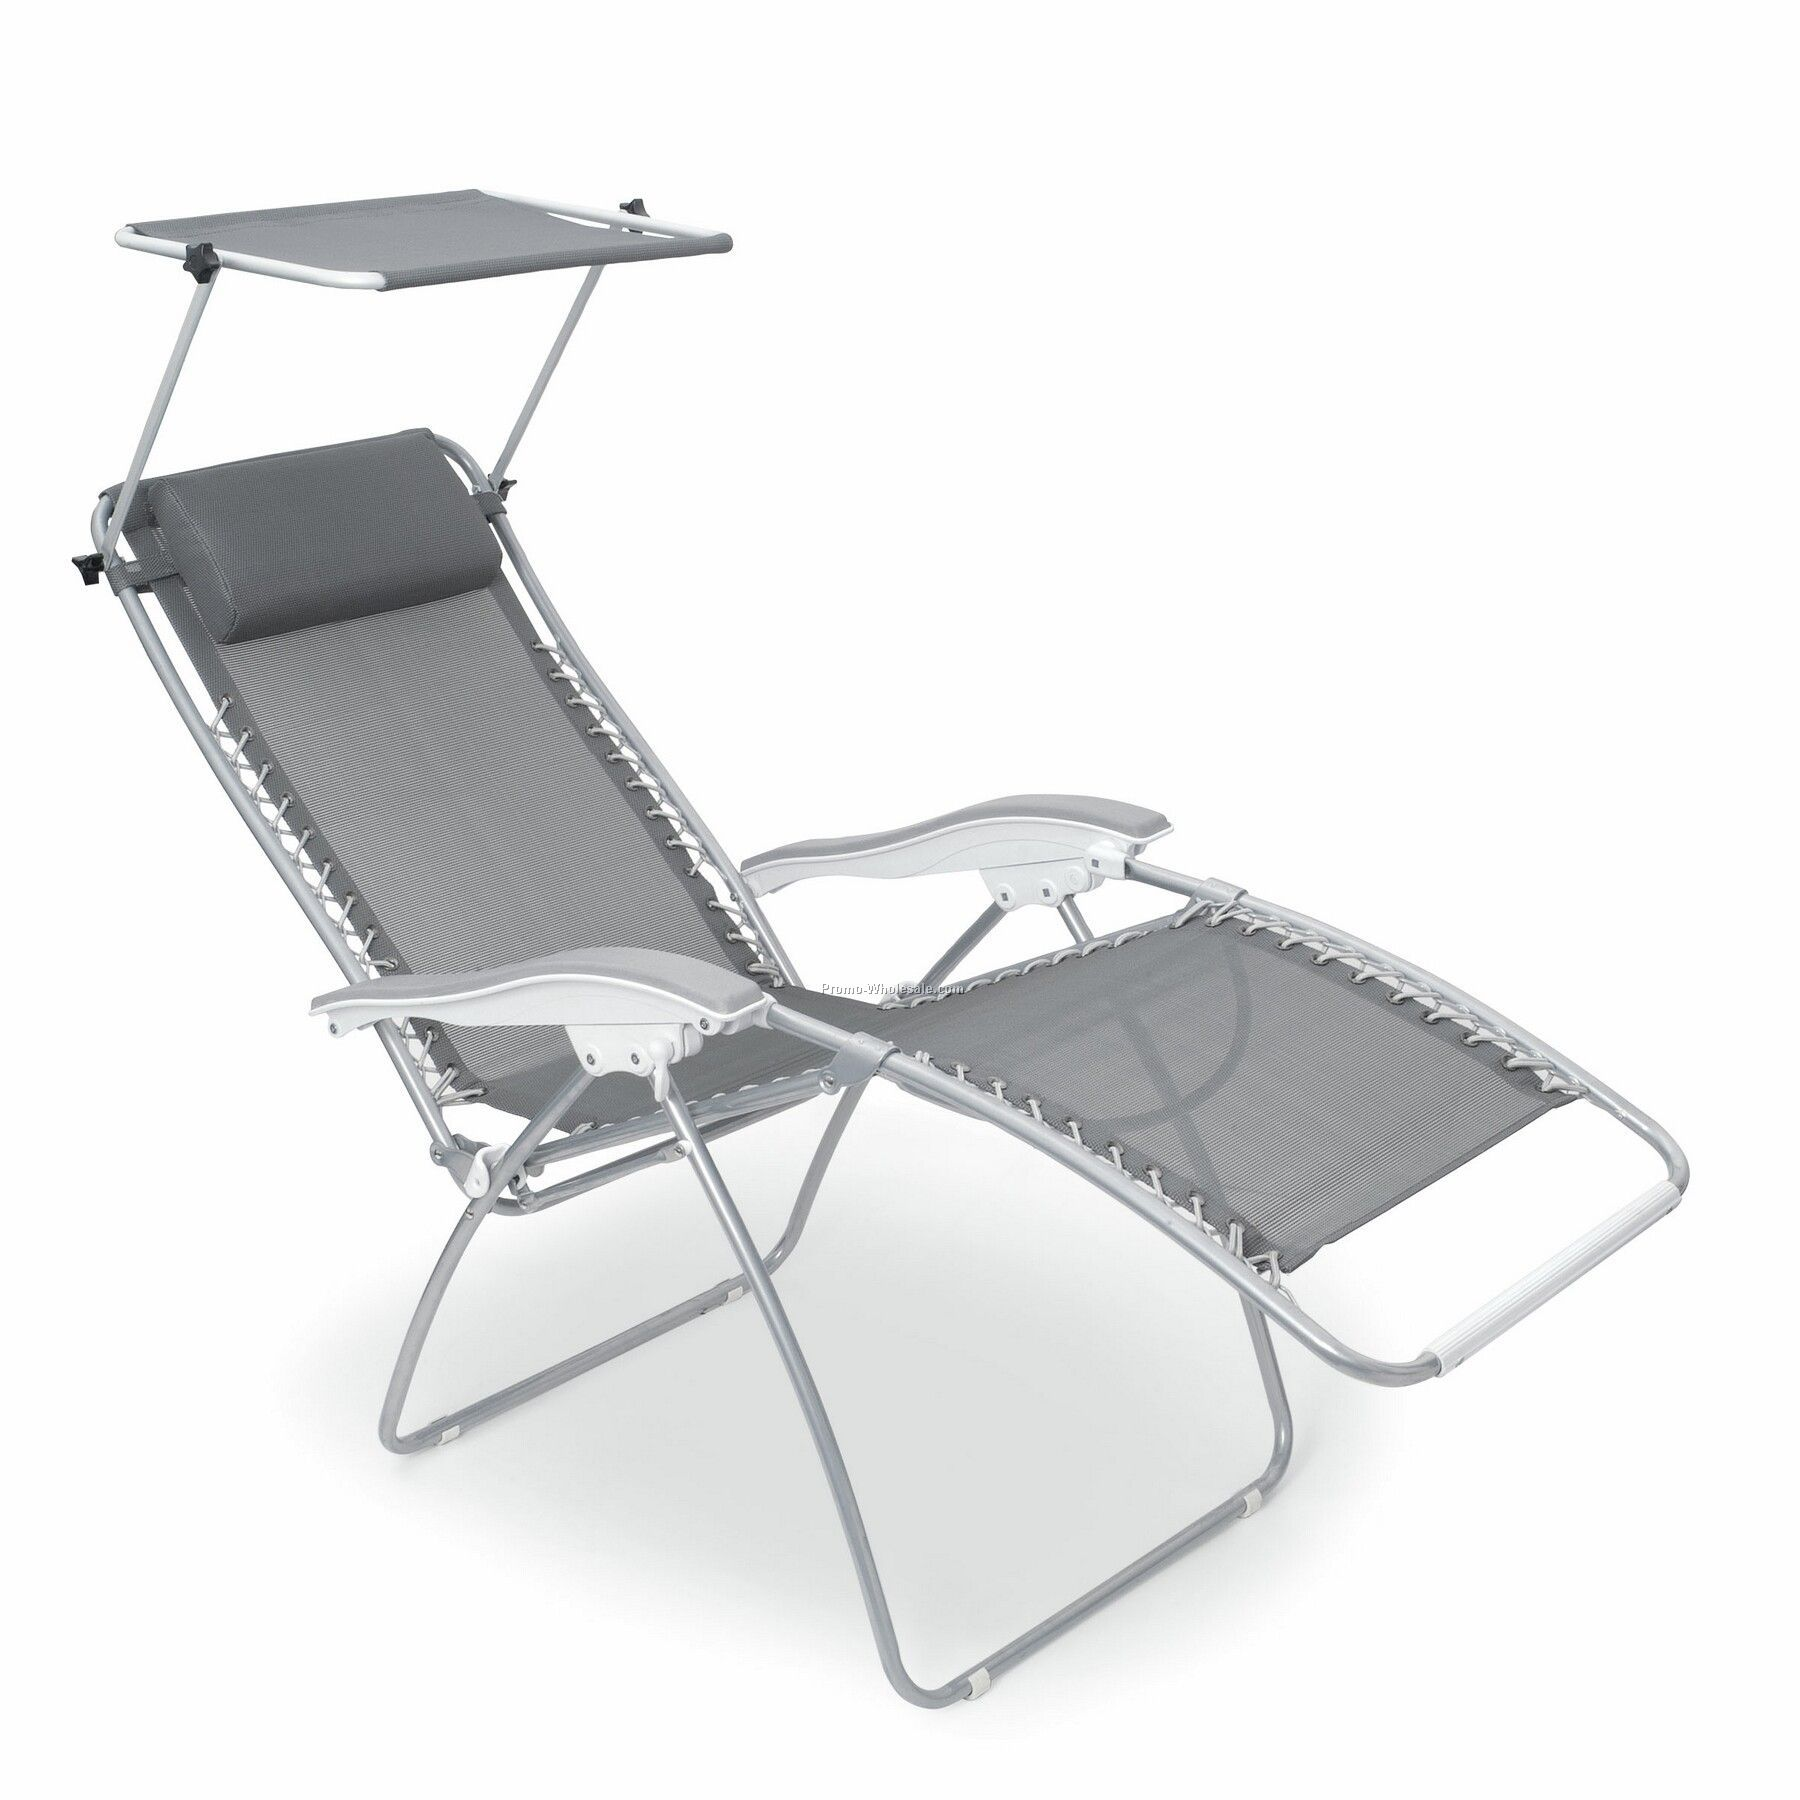 Serenity Reclining Lounge Chair With Adjustable Sunshade Wholesale